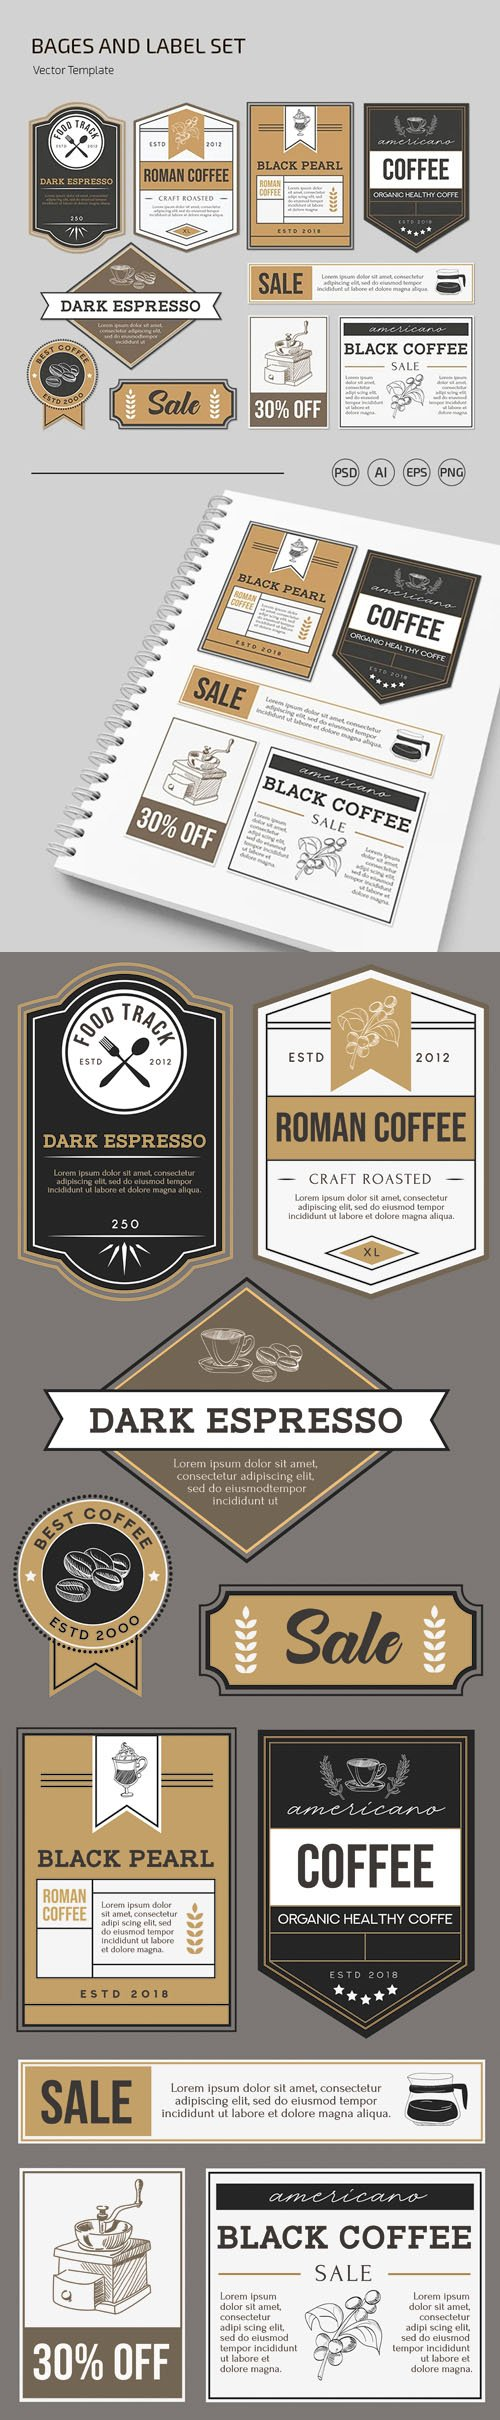 10 Bages & Labels (Ai/EPS/PSD) Templates Dedicated to Cafes & Restaurants